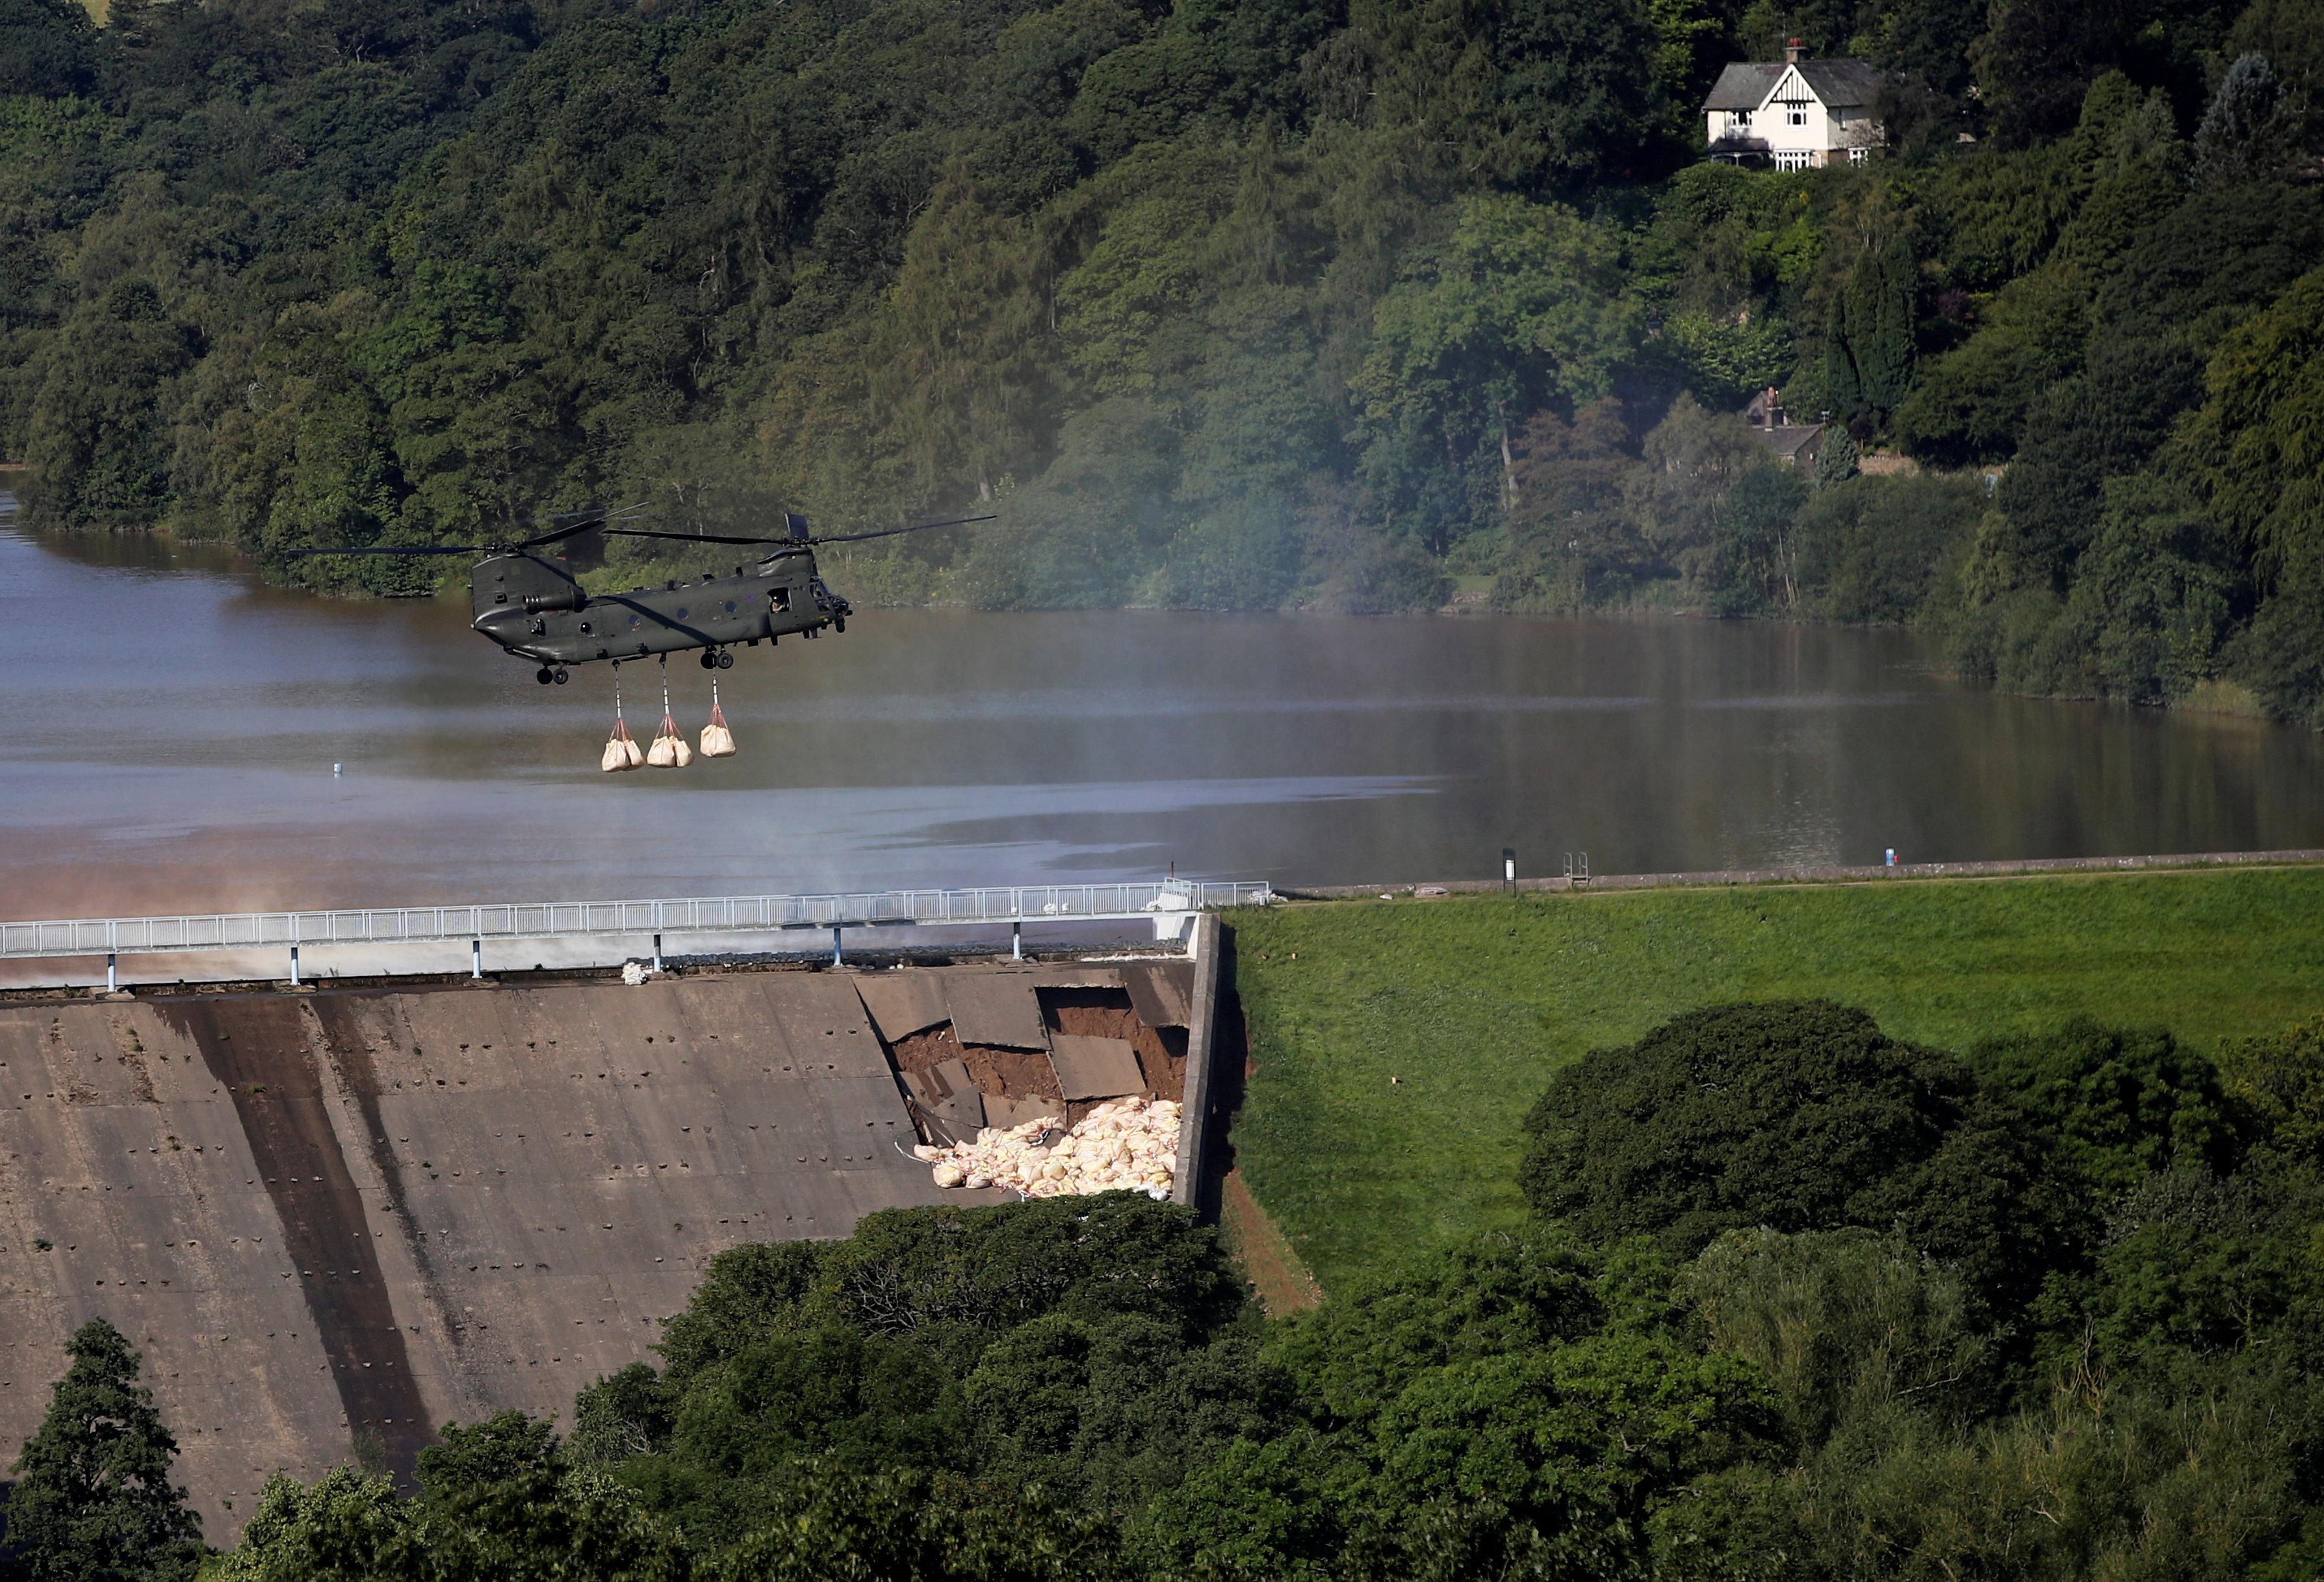 A helicopter drops sand bags on top of the dam after a nearby reservoir was damaged by flooding